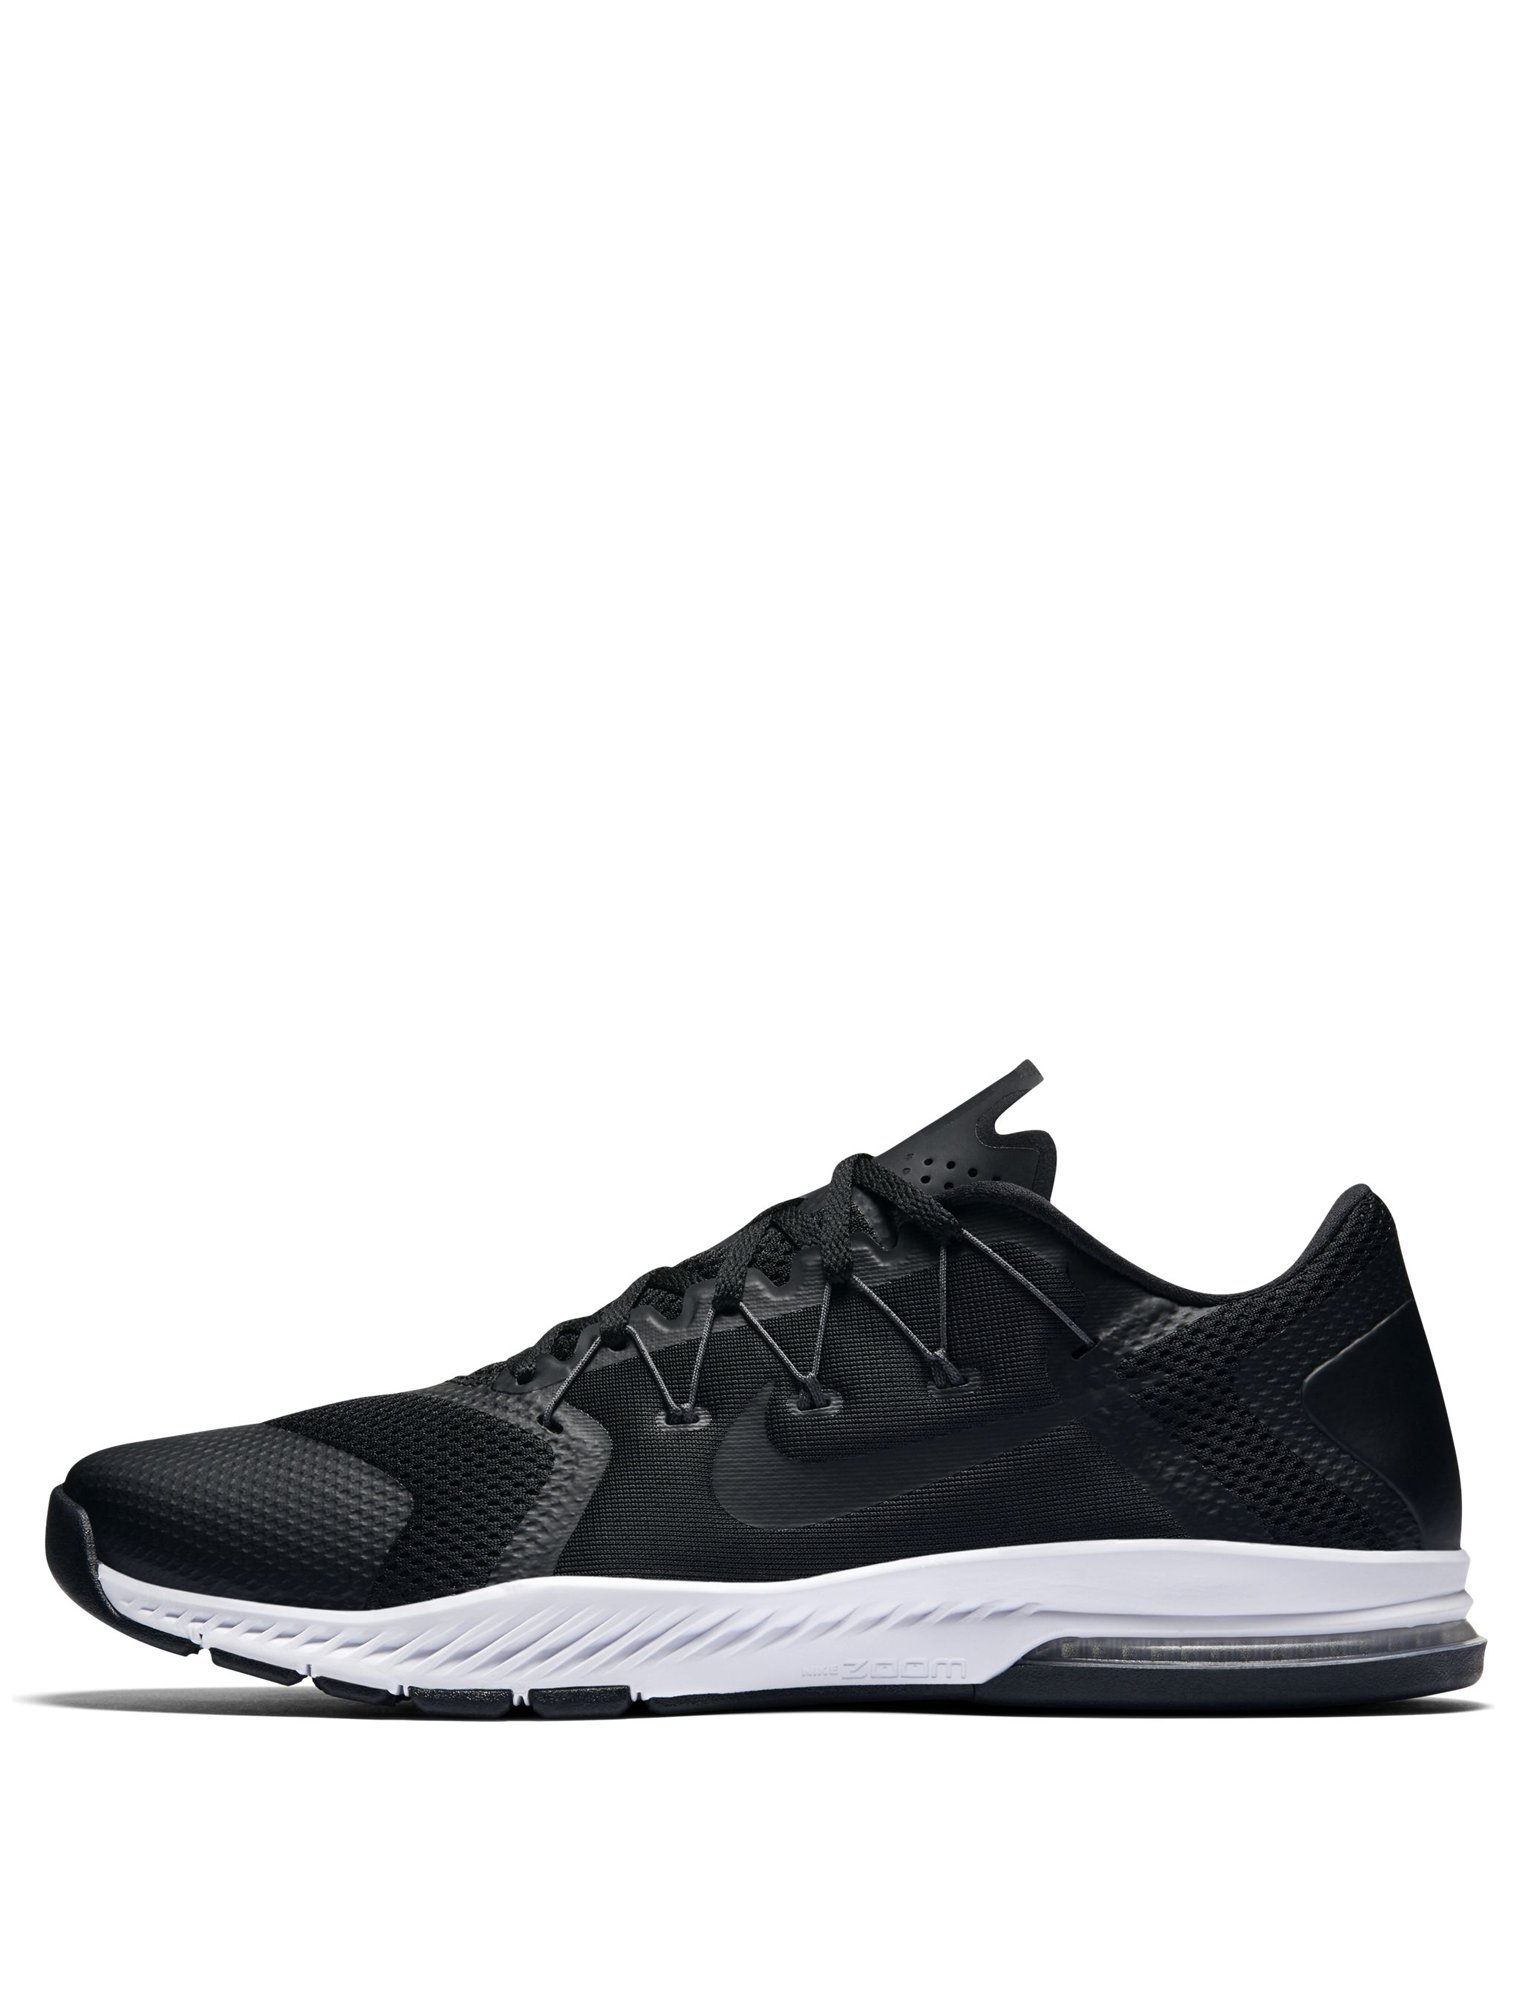 new styles cfd2d c861a Galleon - NIKE Air Zoom Train Complete Mens Running Trainers 882119  Sneakers Shoes (UK 8 US 9 EU 42.5, Black Anthracite White 002)